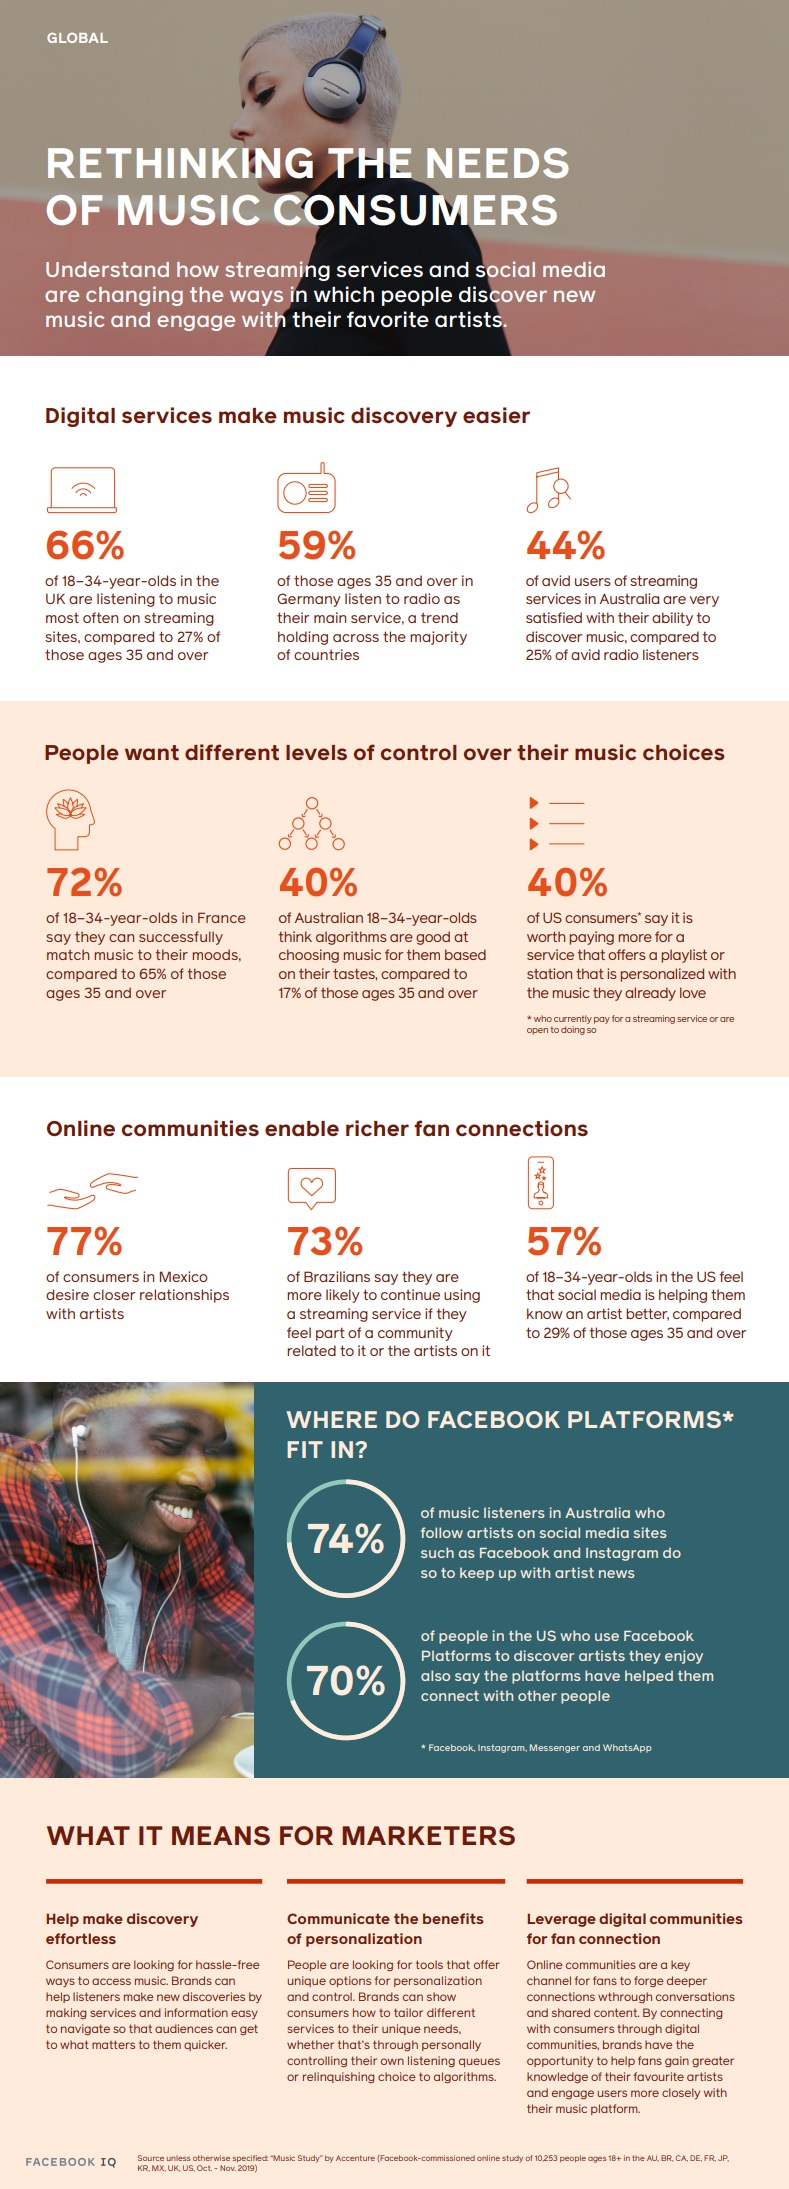 Facebook music streaming insights